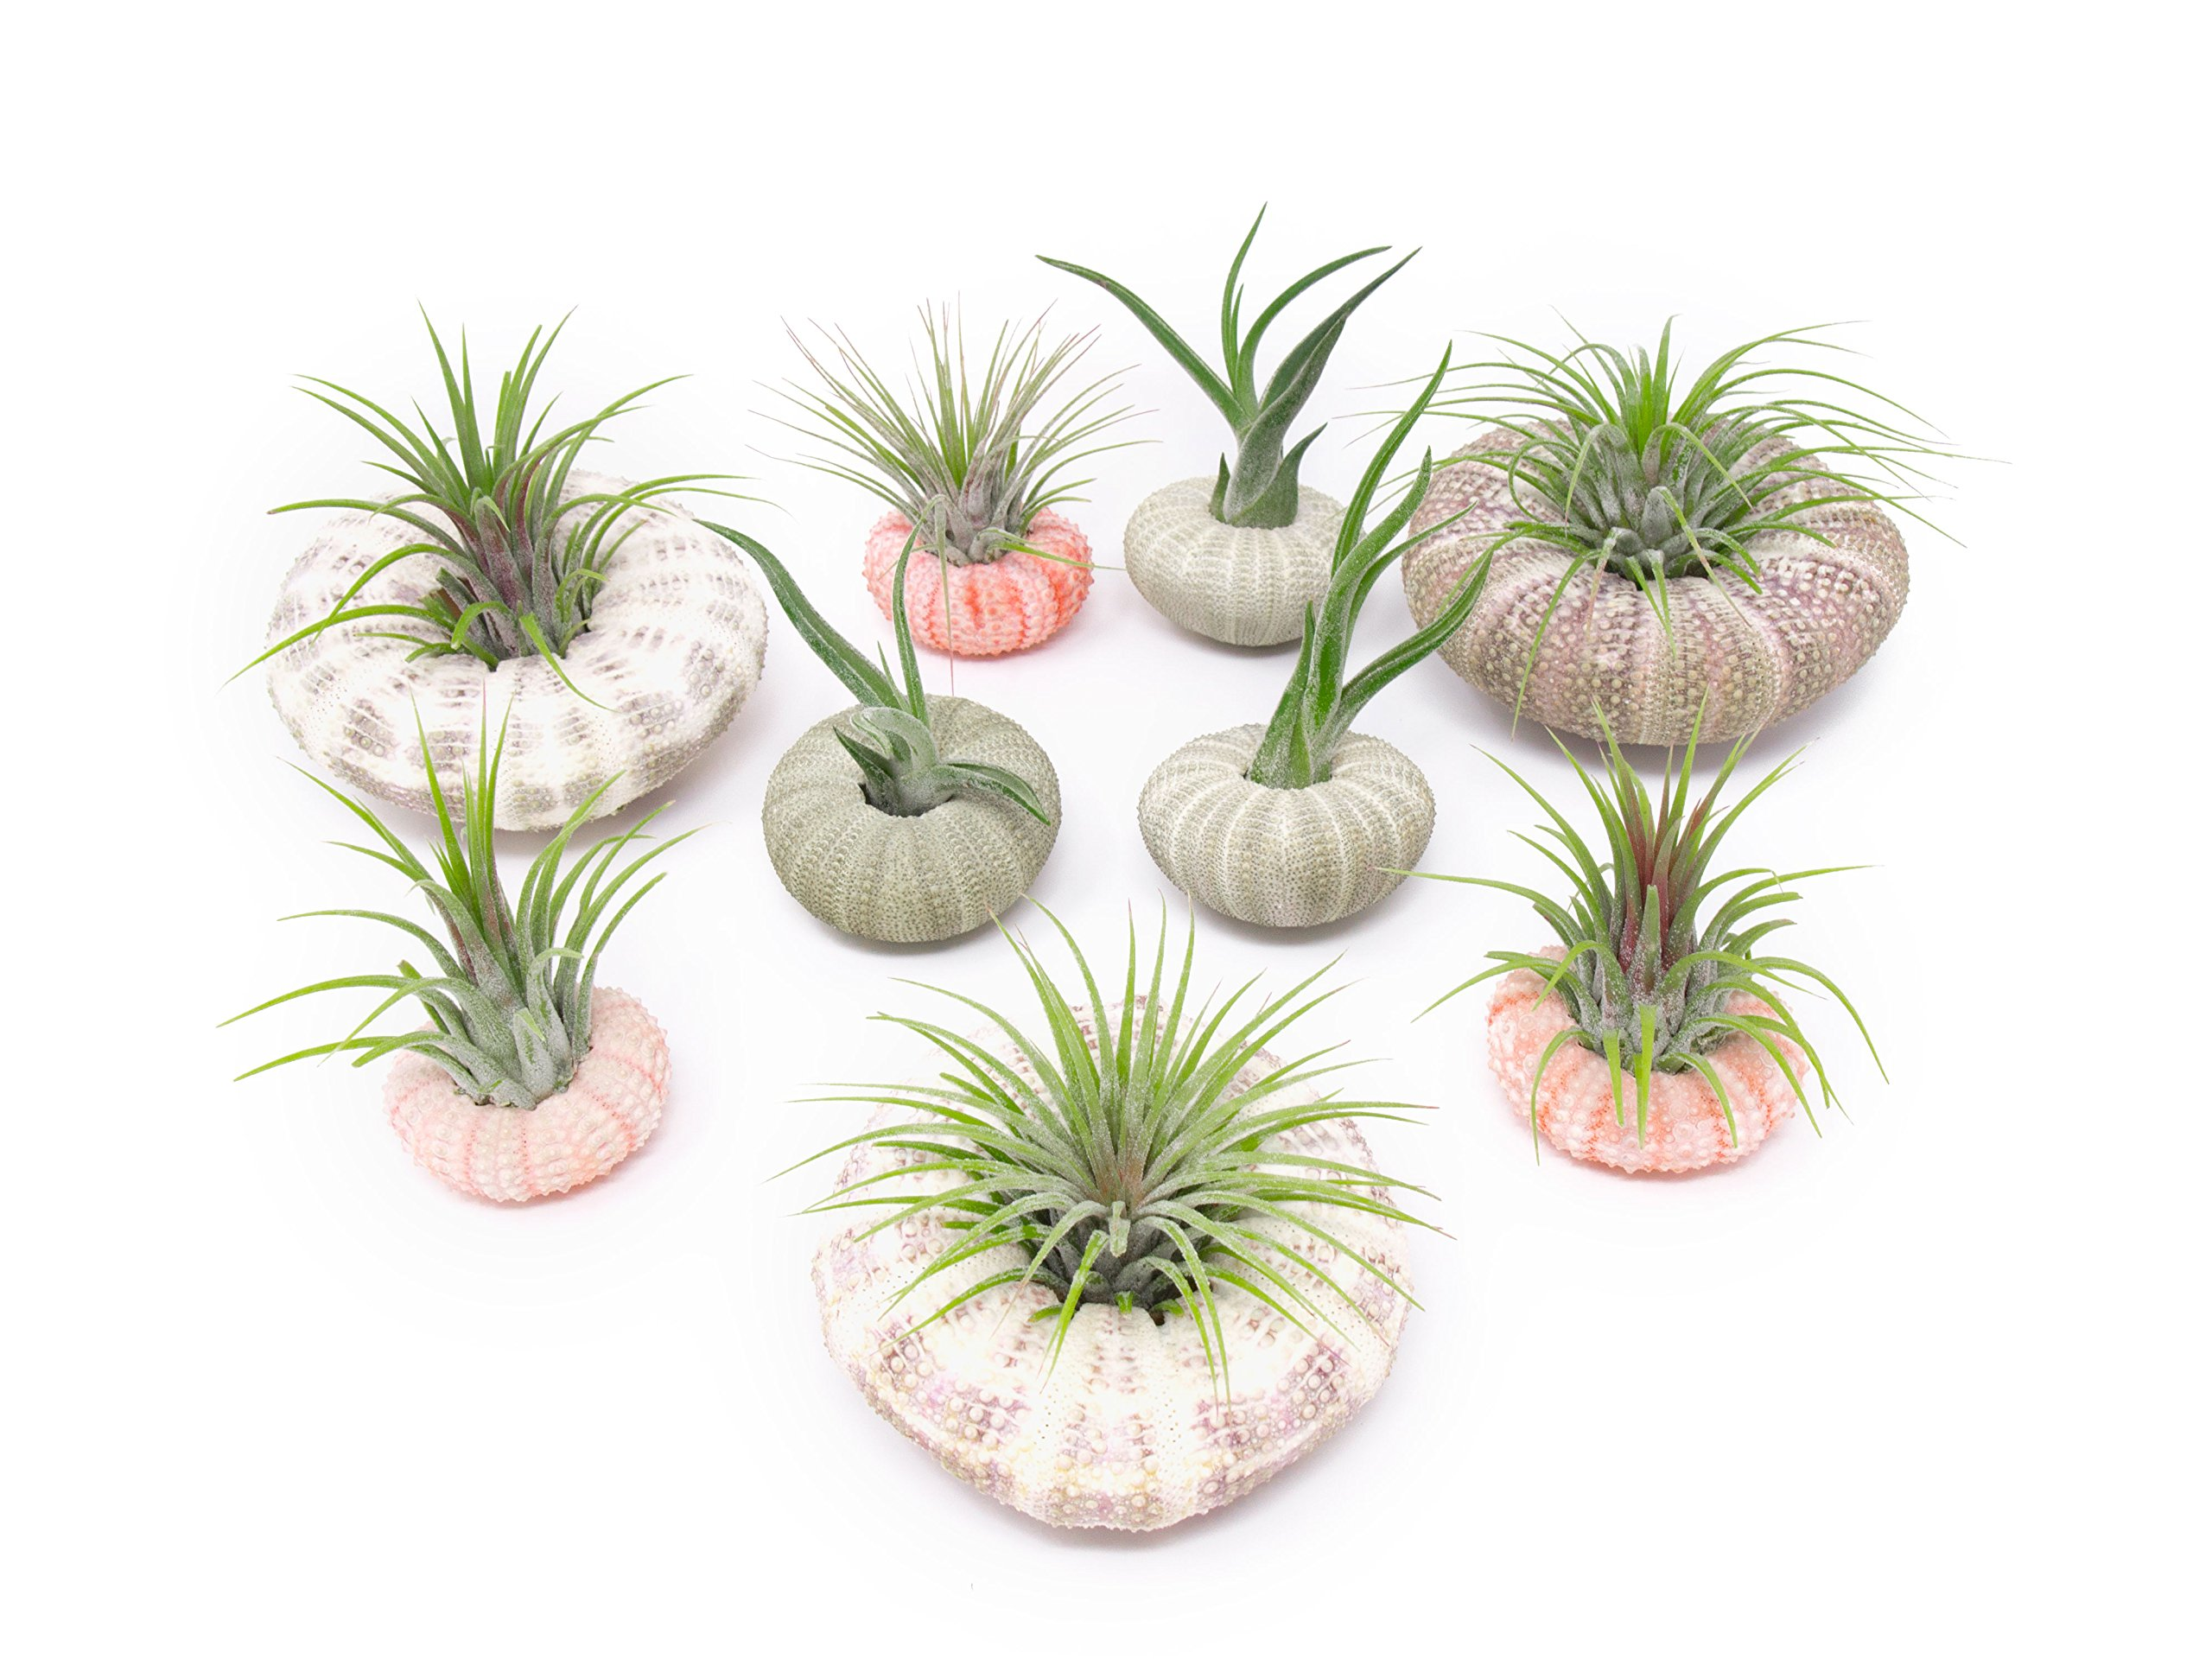 Air Plant Sea Urchin Kit (9 Variety Pack) - Natural Shell Containers/Holders for Live Tillandsia - Multicolor Stand/Jellyfish Pot for Indoor Home Decor by Aquatic Arts